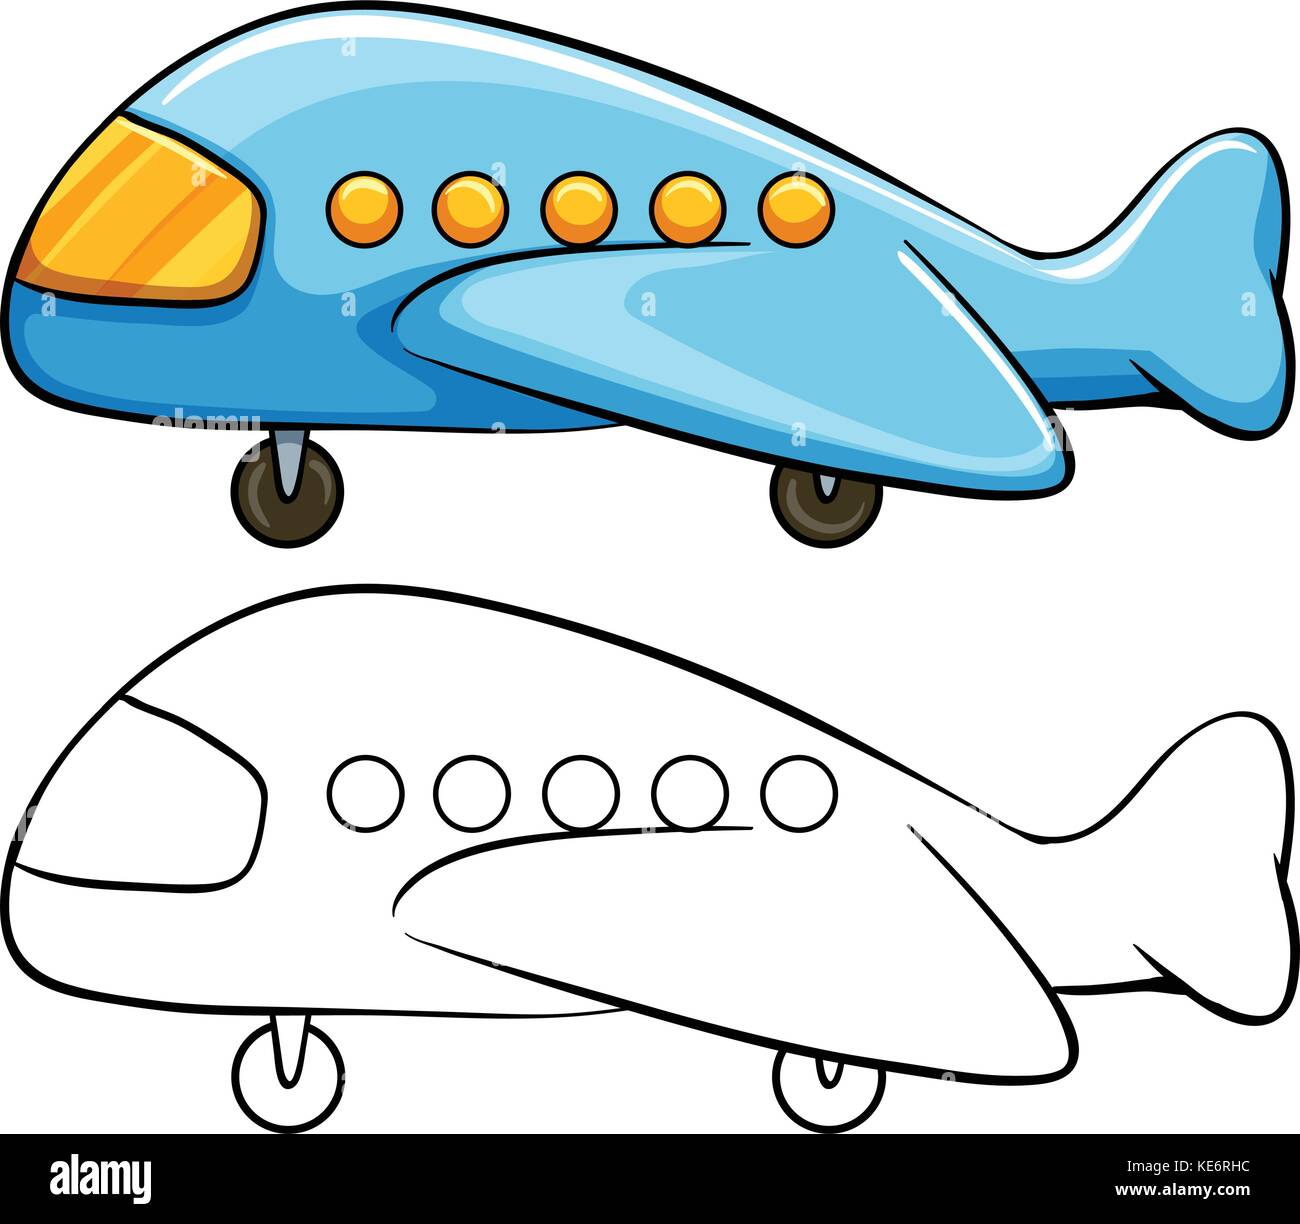 Aeroplane Ride Cut Out Stock Images Pictures Alamy